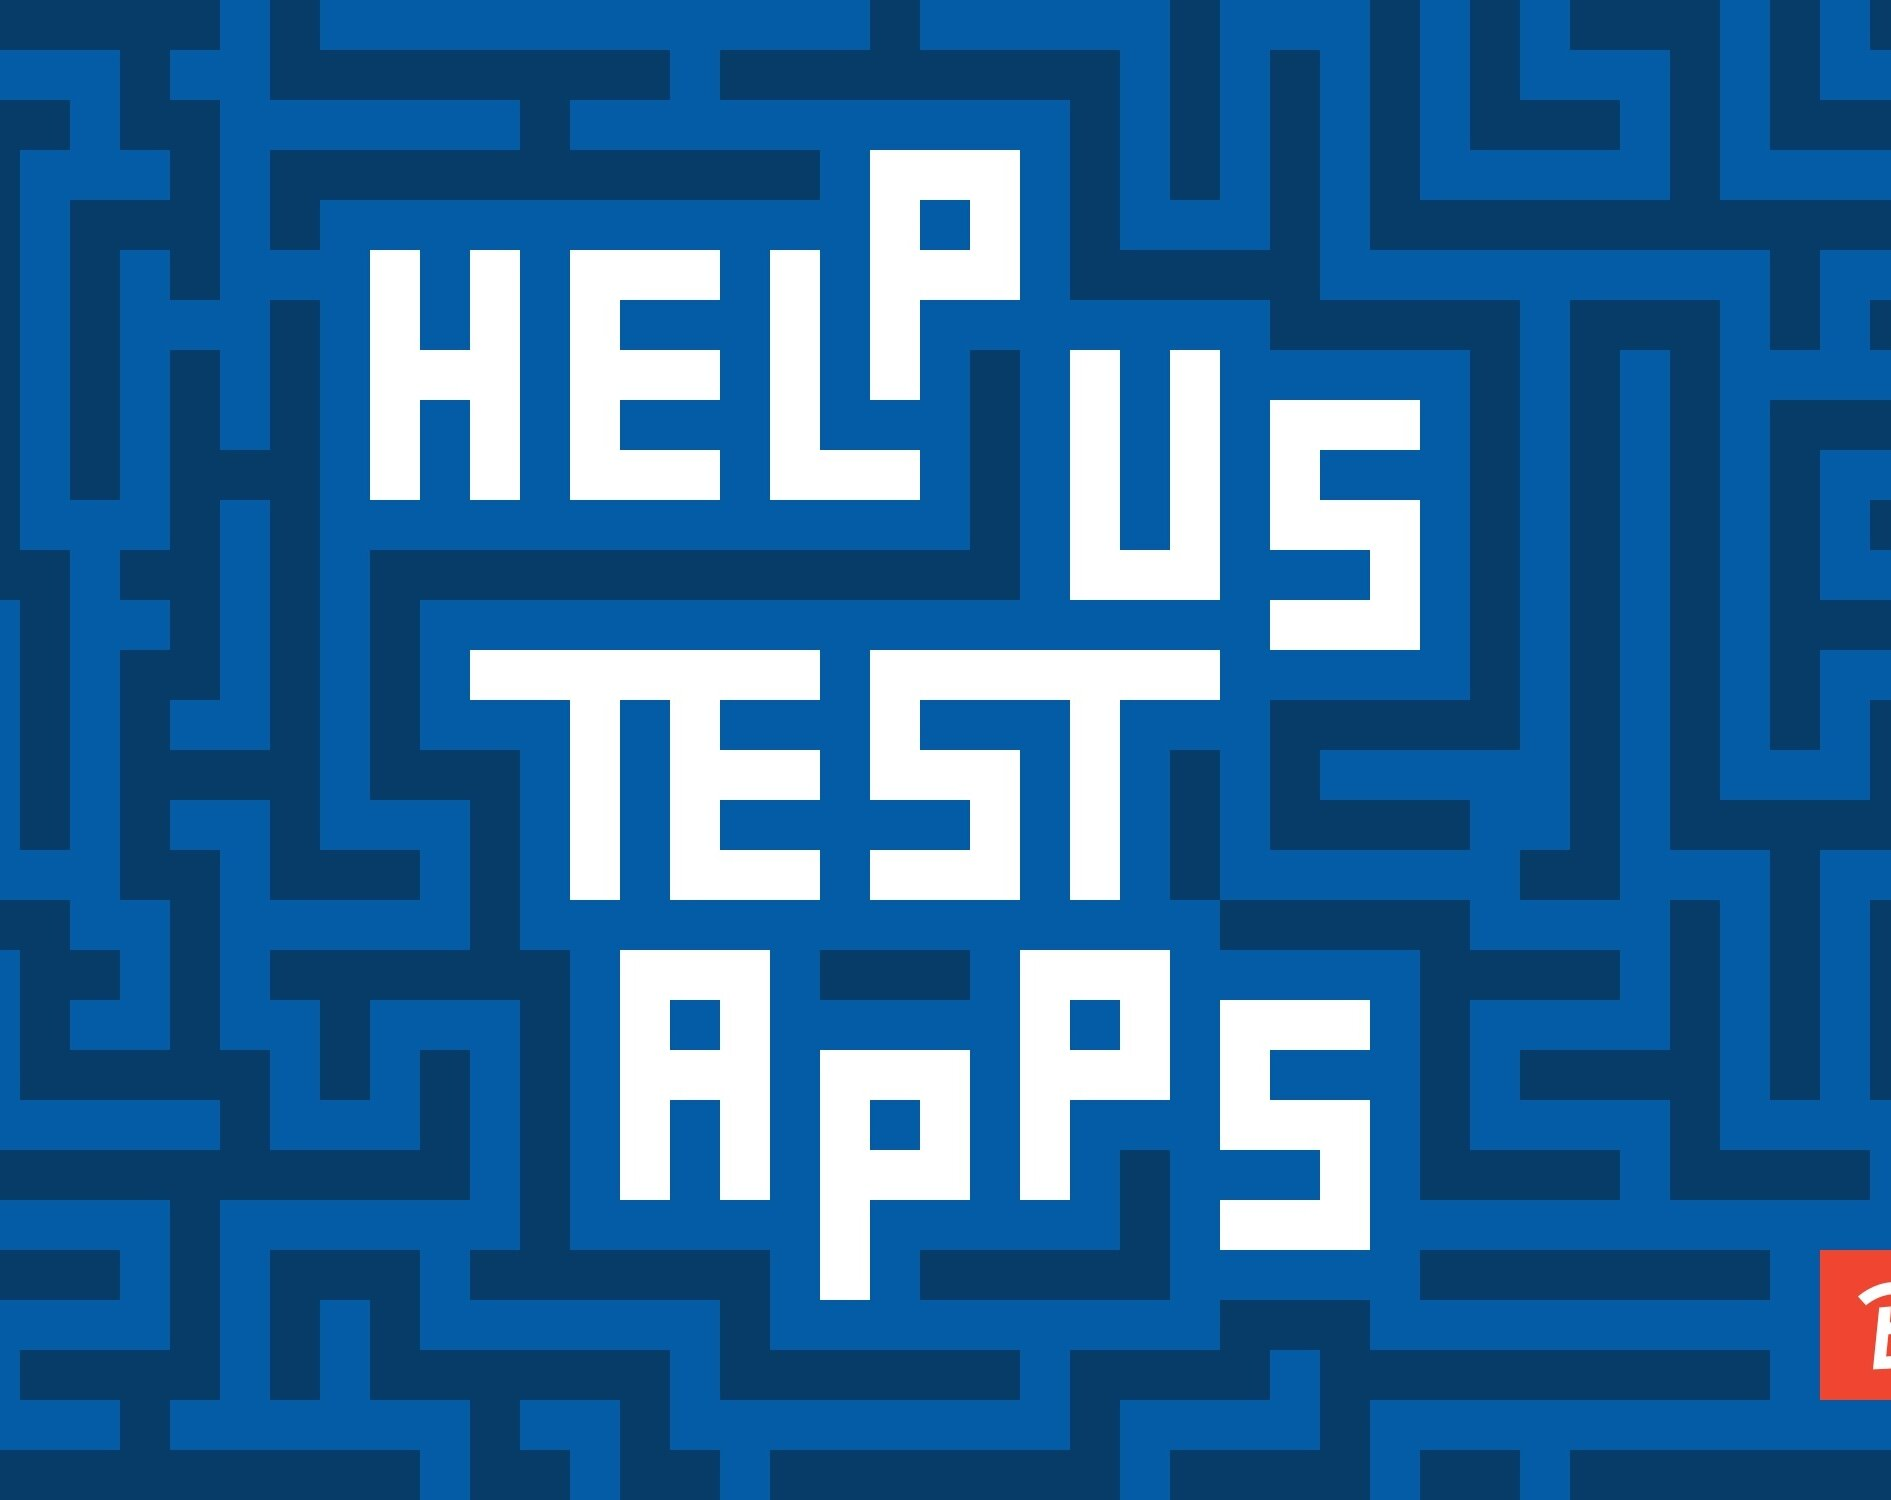 Help us test apps rect1